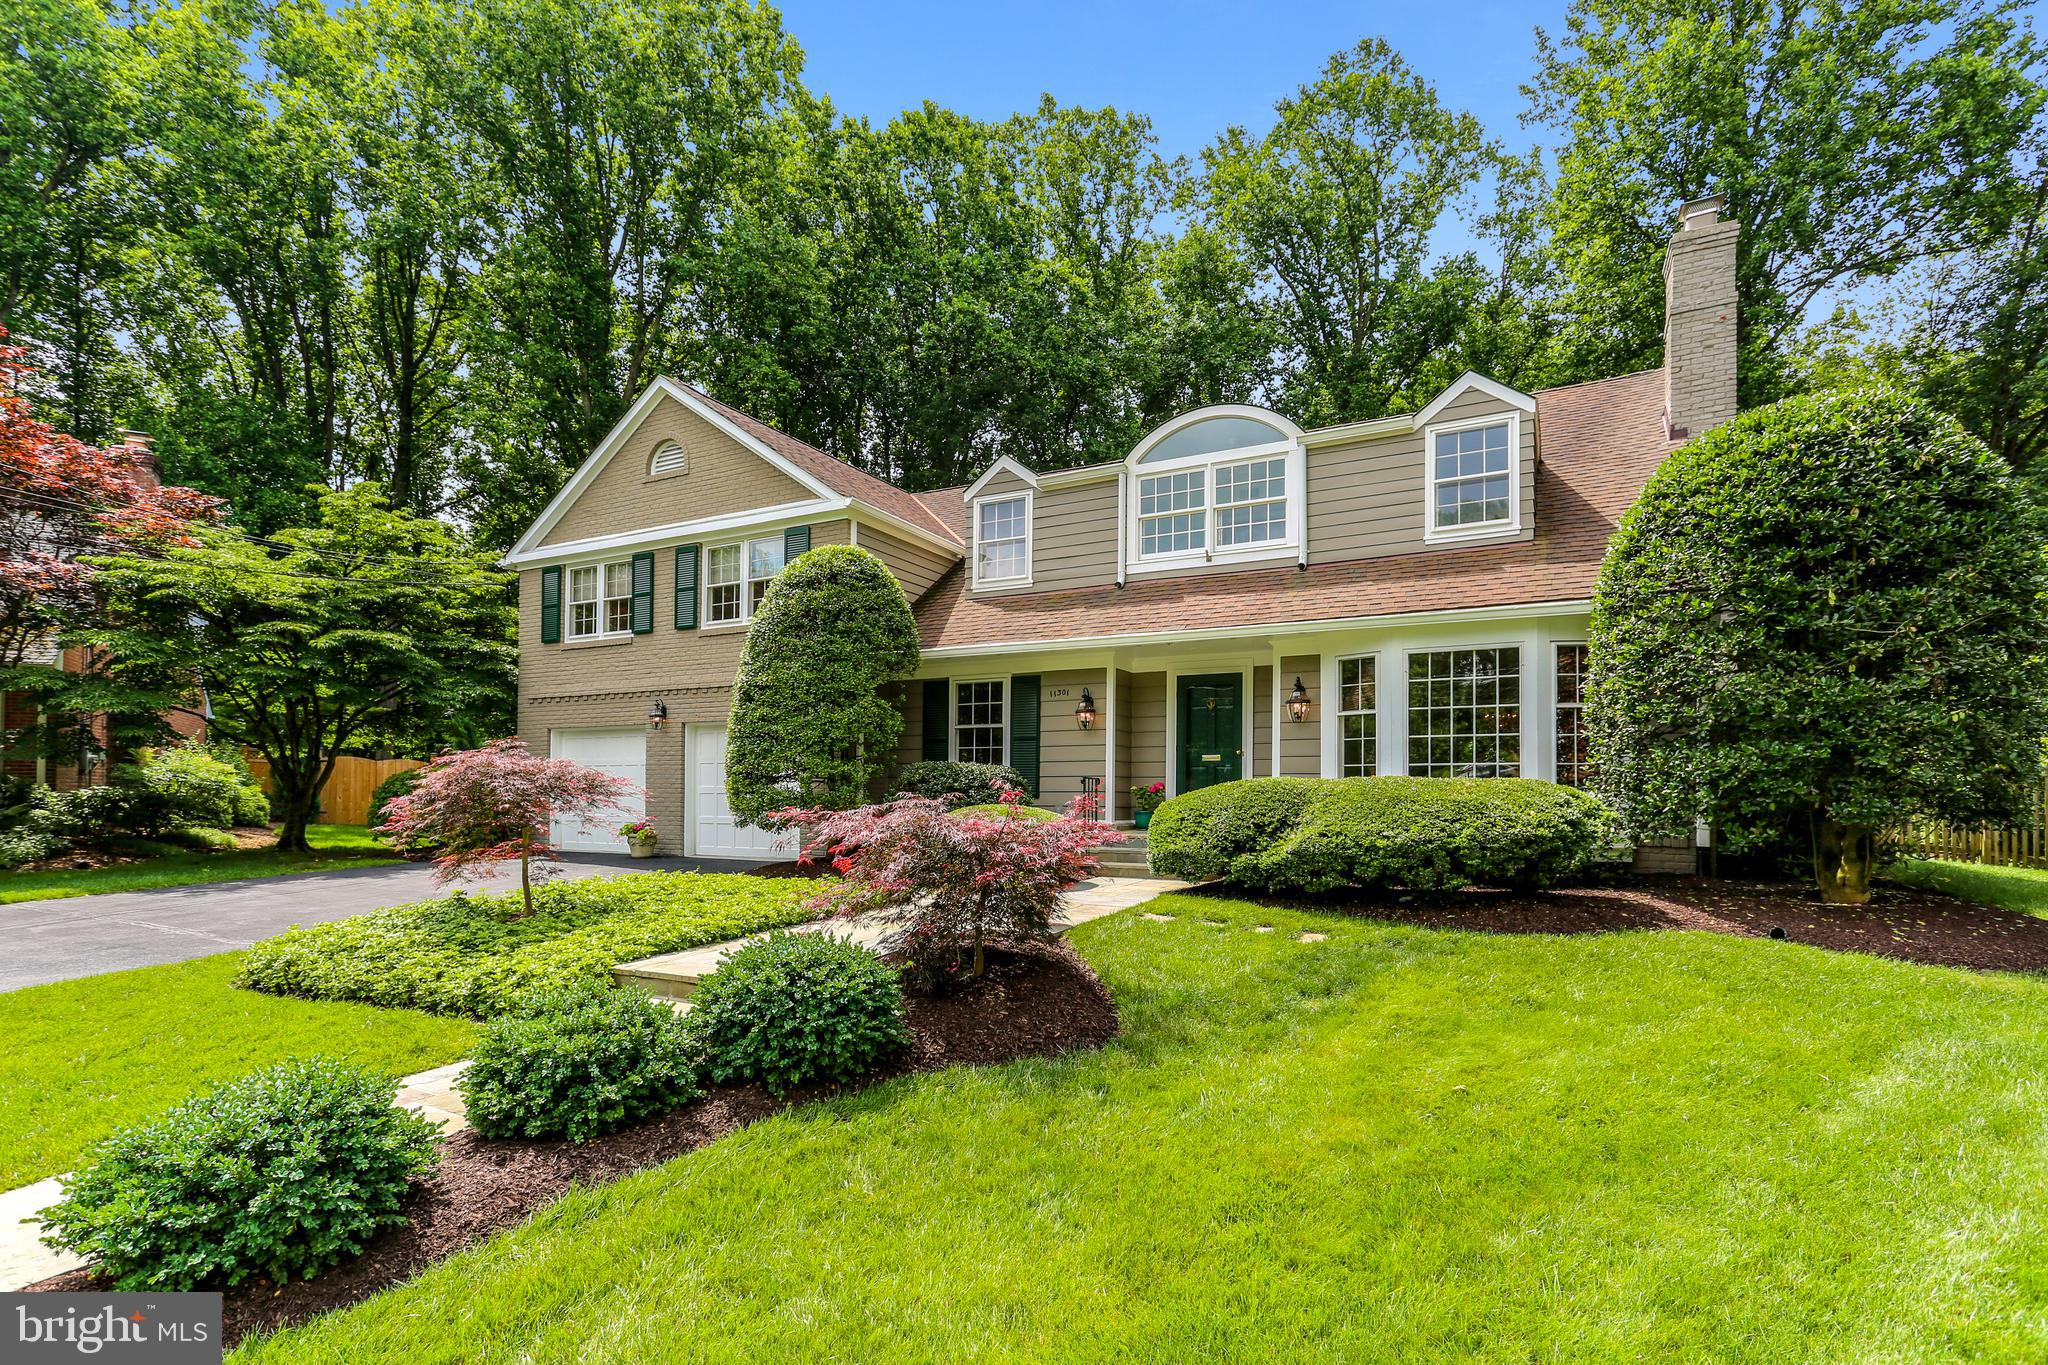 11301 ROLLING HOUSE ROAD, NORTH BETHESDA, MD 20852